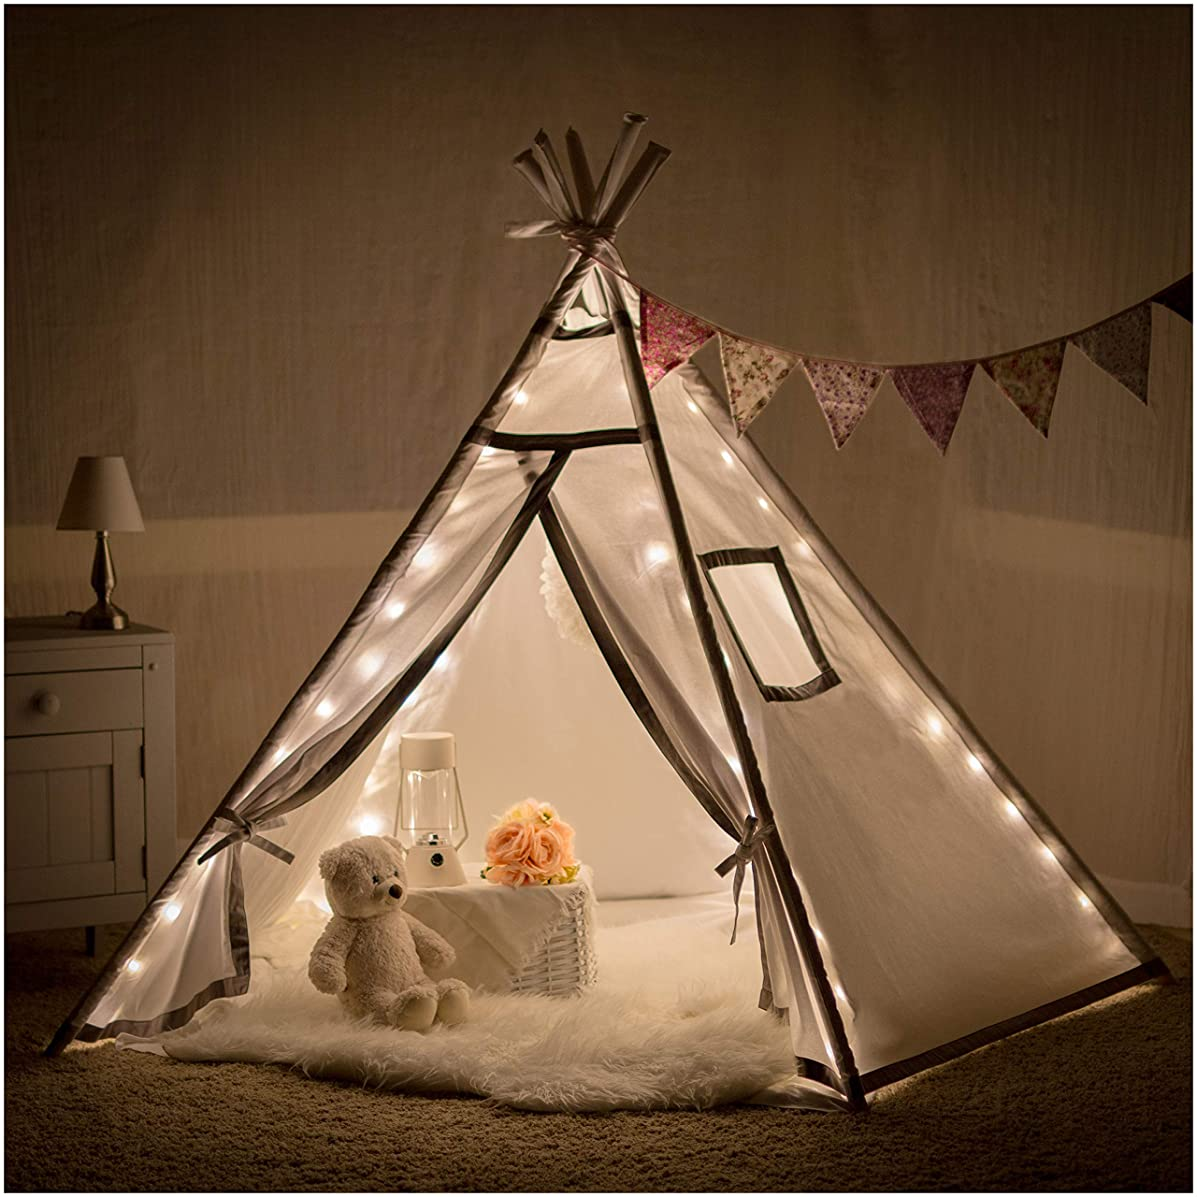 Teepee Tent for Girls, Boys - Twinkle Lit Teepee | Fairy Lights Included | Tipi Tent Kids Will Love for Indoor Reading and Imaginative Play | For Children and Toddlers Ages 3 and up | White, Grey Trim